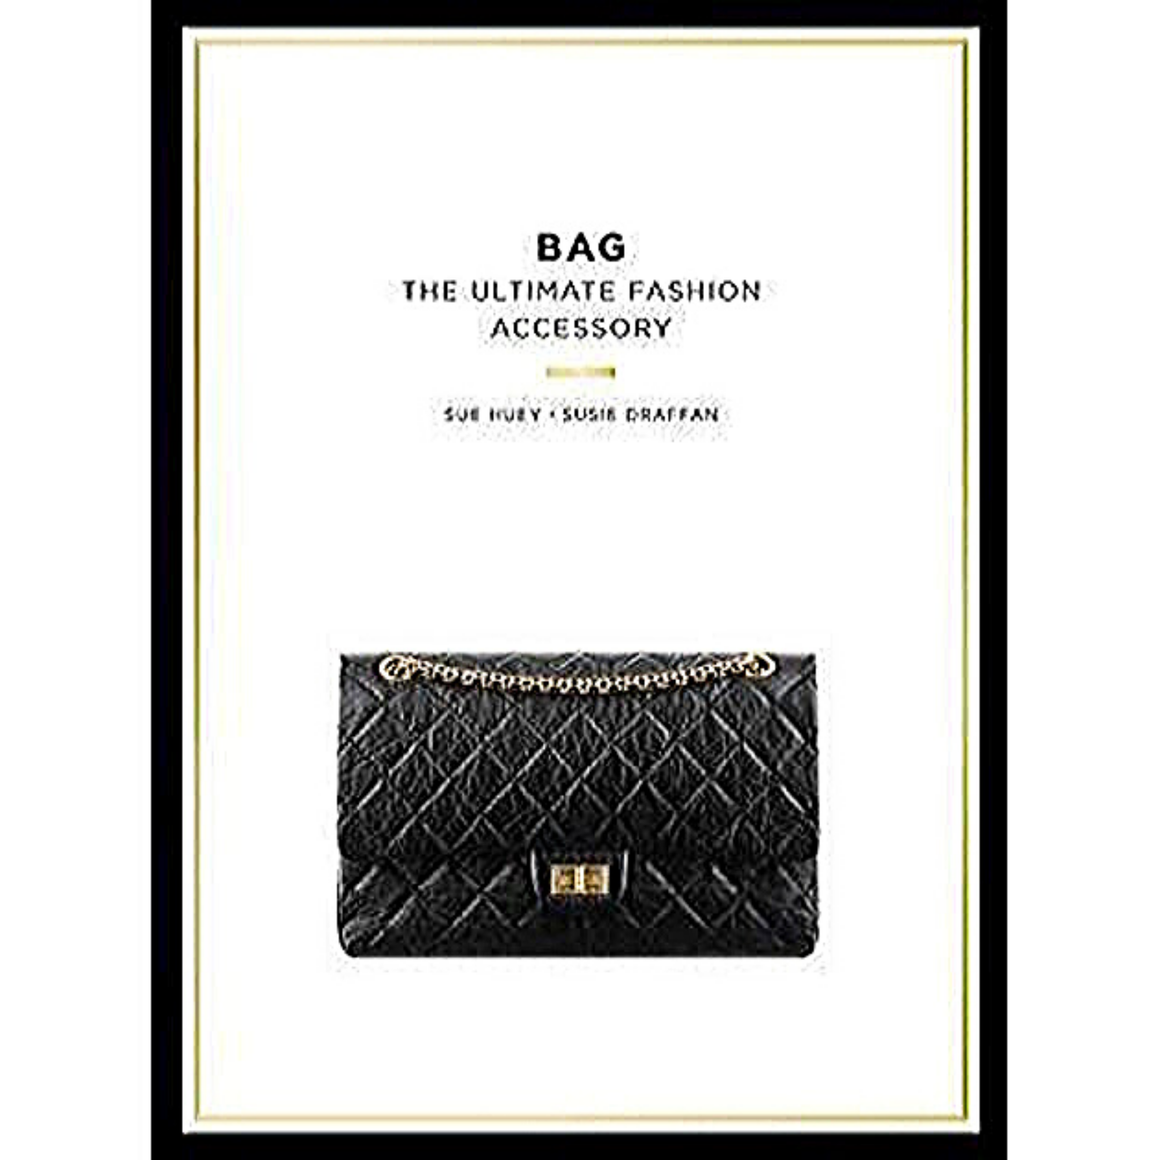 BAG: THE ULTIMATE FASHION ACCESSORY: THE ULTIMATE FASHION ACCESSORY